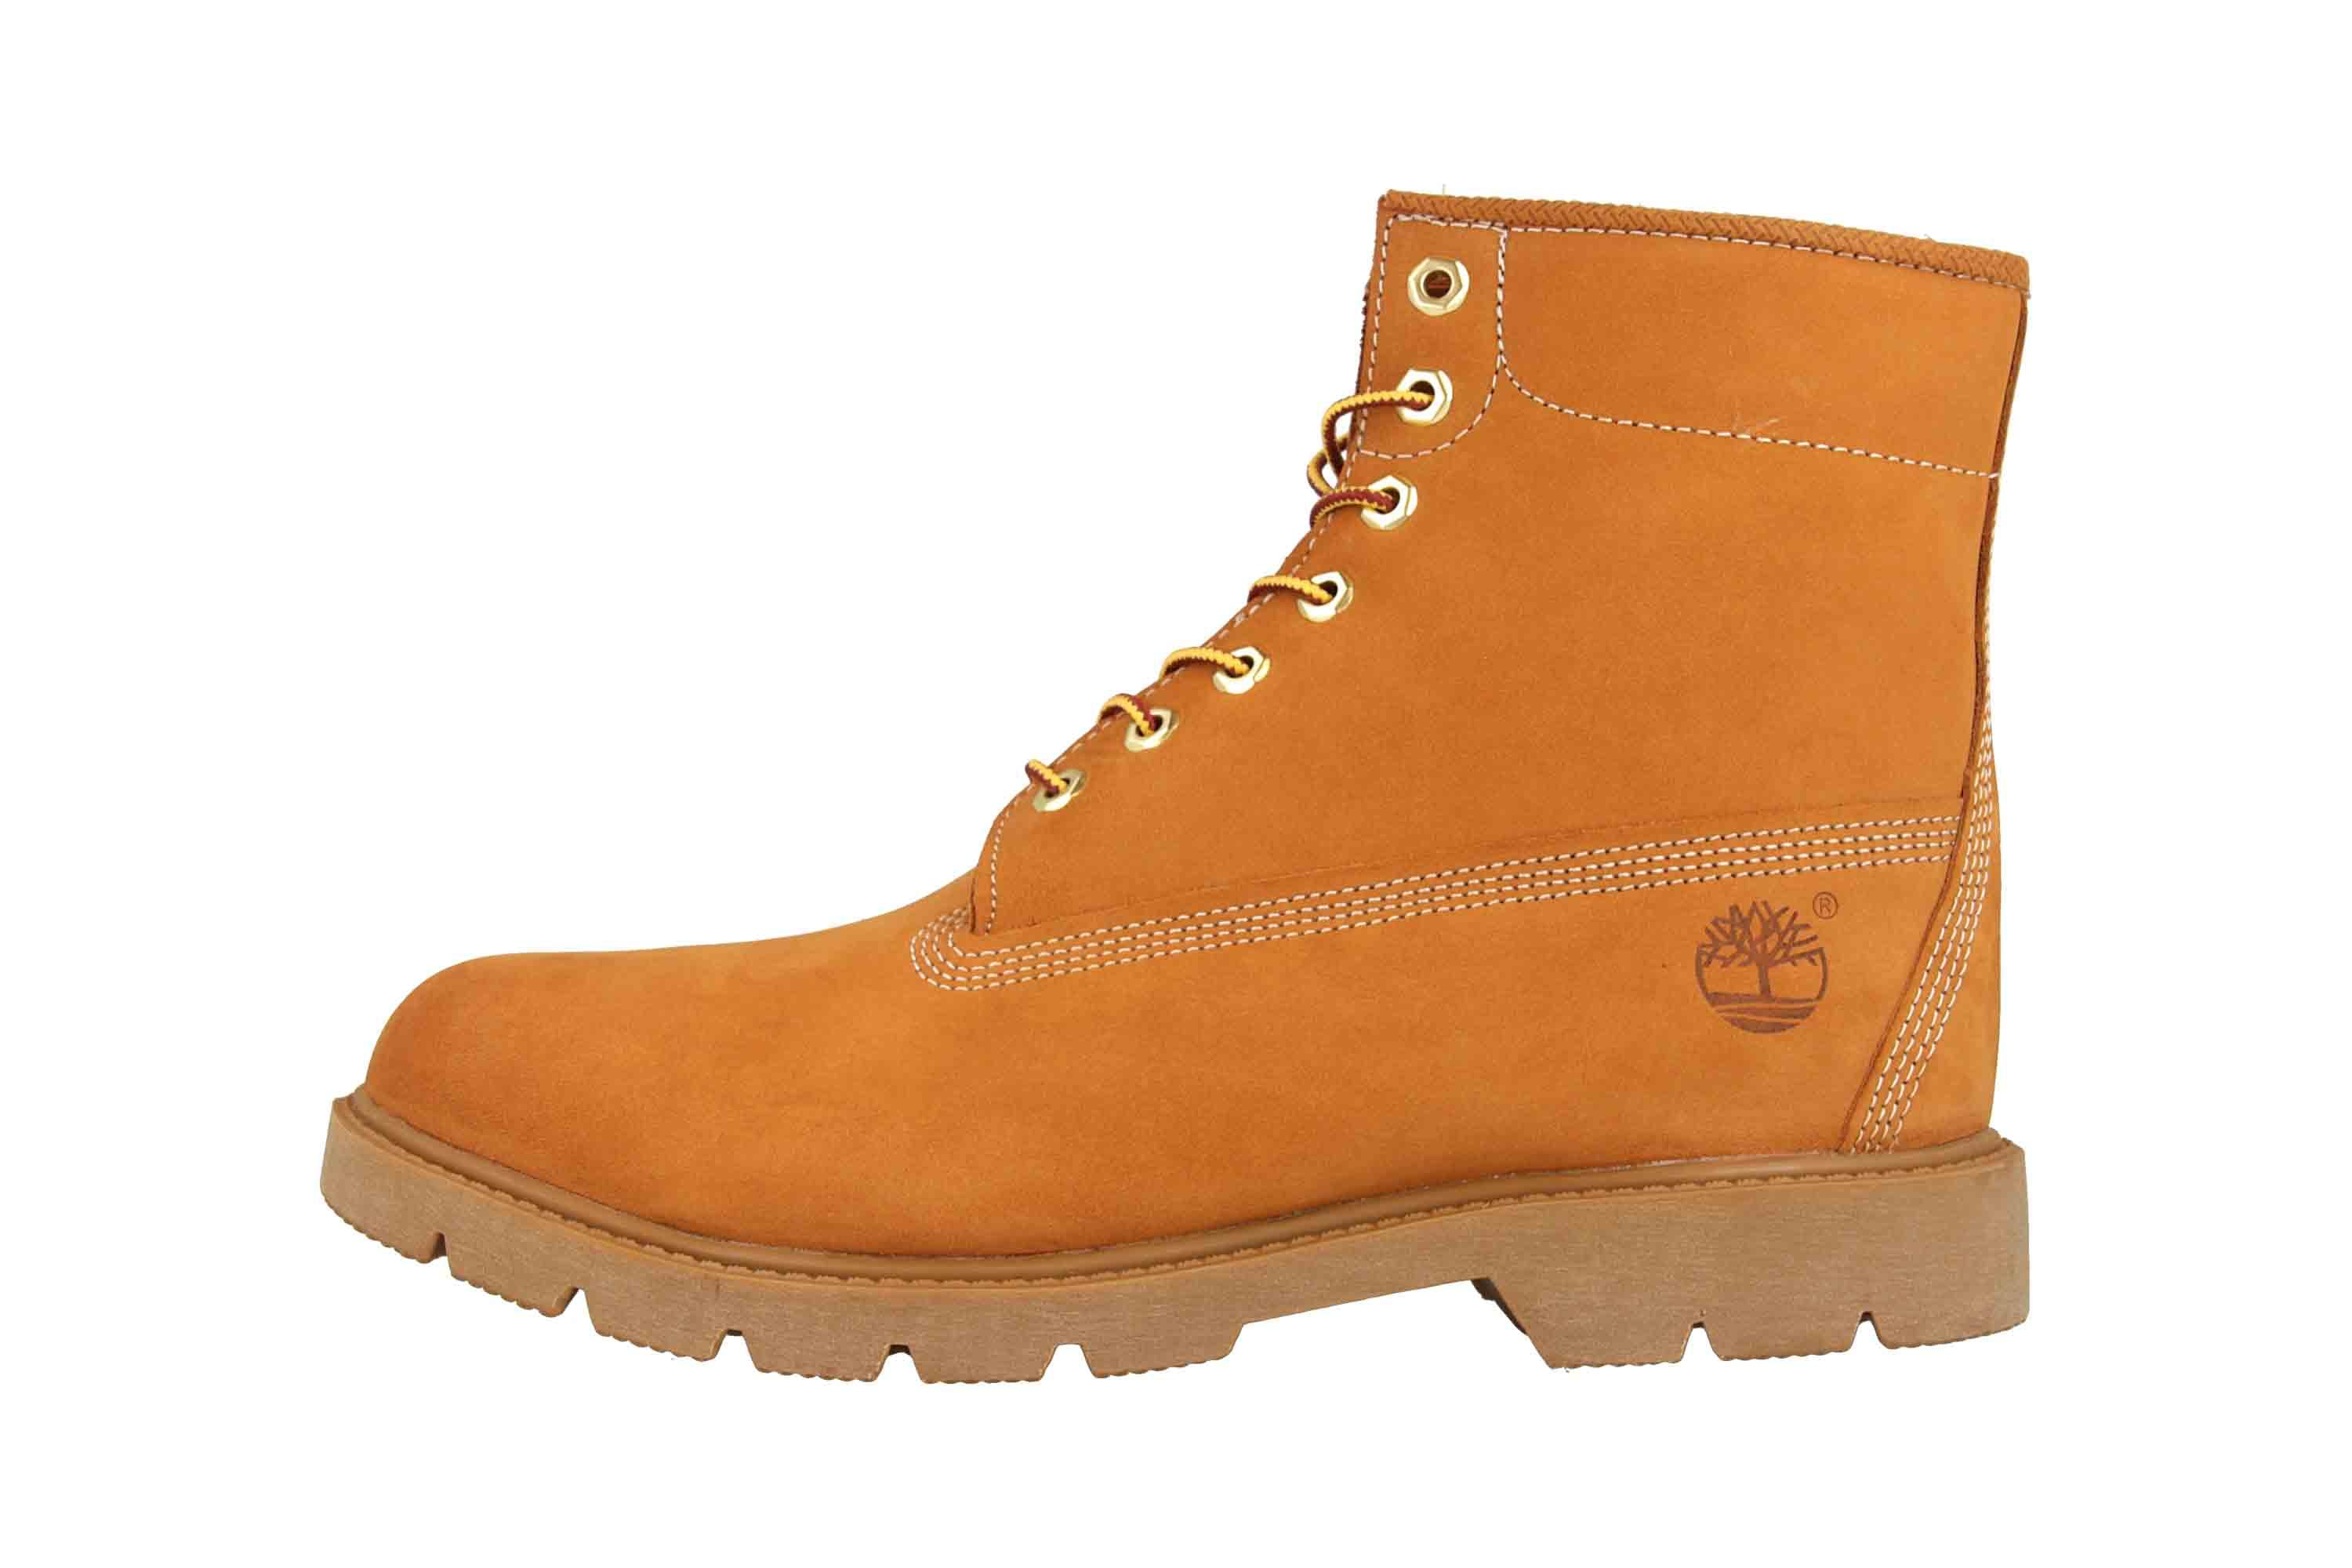 Timberland Timberland Lady's youth ground goalkeepers slim cup sole boots JUNIOR EK SLIM CUPSOLE nubuck 6797R ウィート